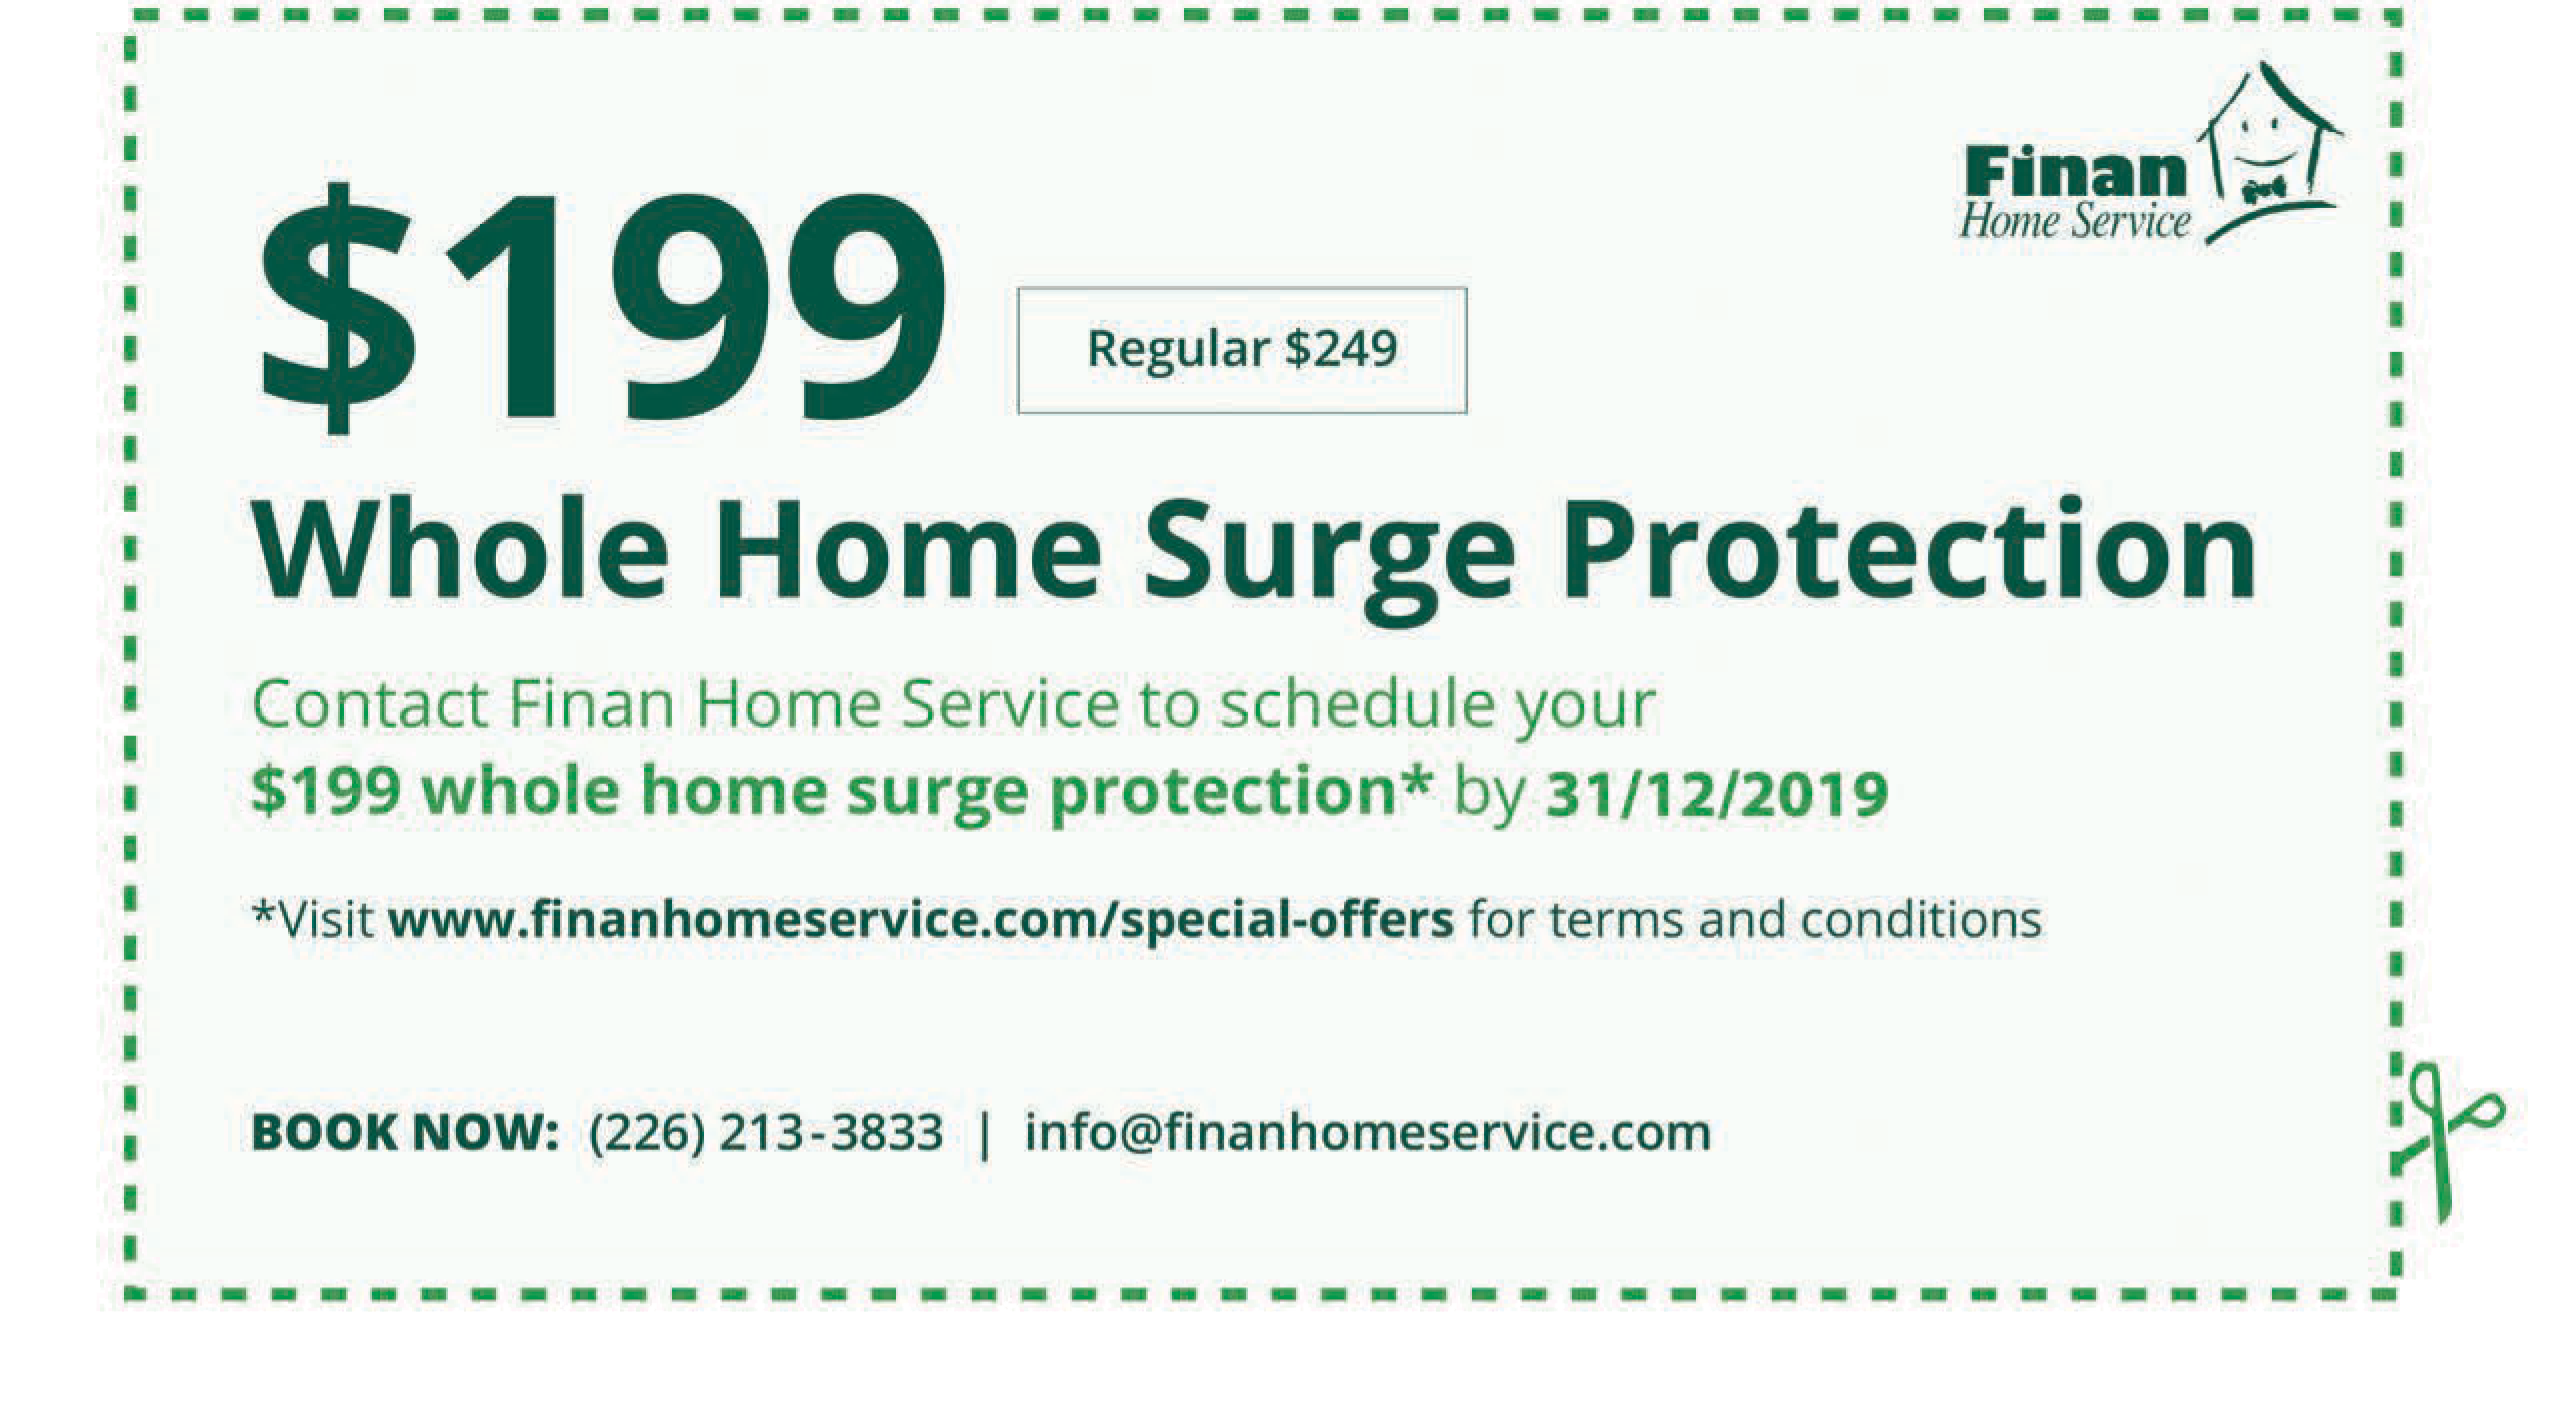 $199 Whole Home Surge Protection